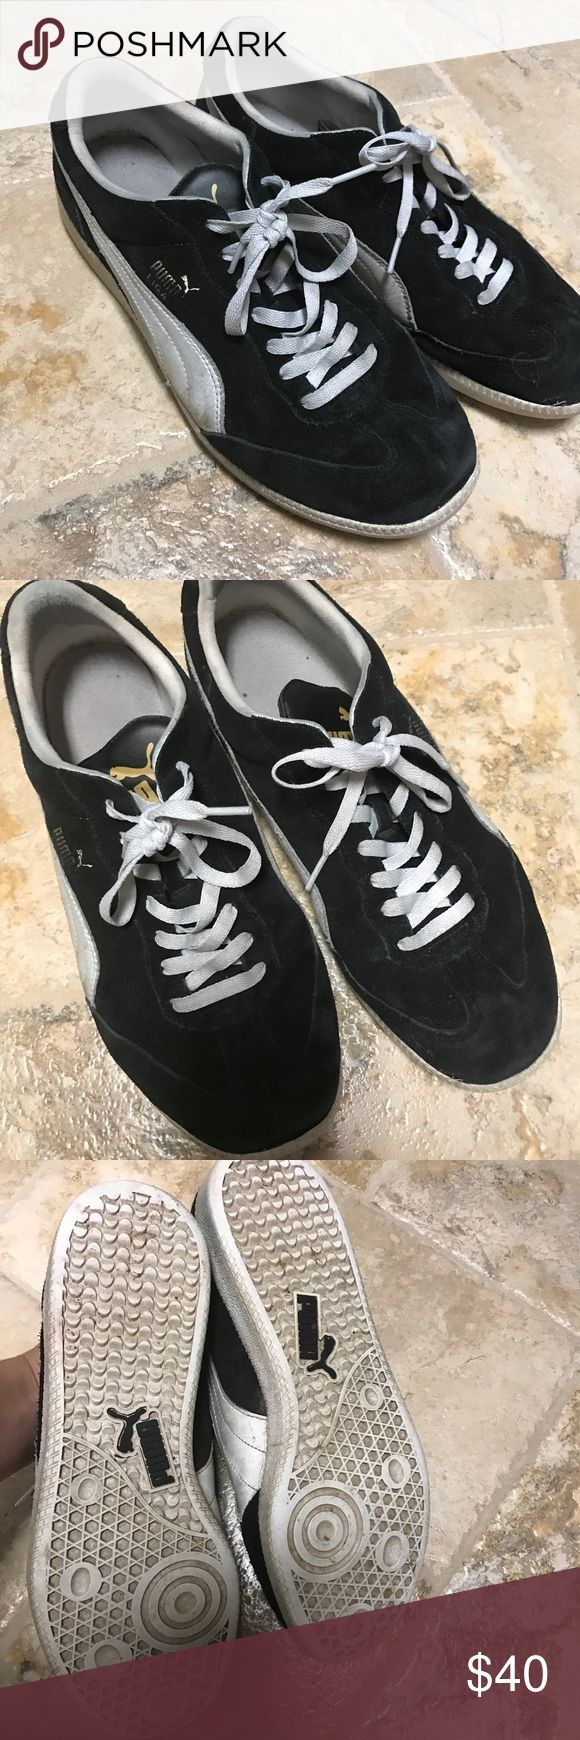 Details about puma womens suede classic rg black running shoes - Puma Athlete Sneakers Size 12